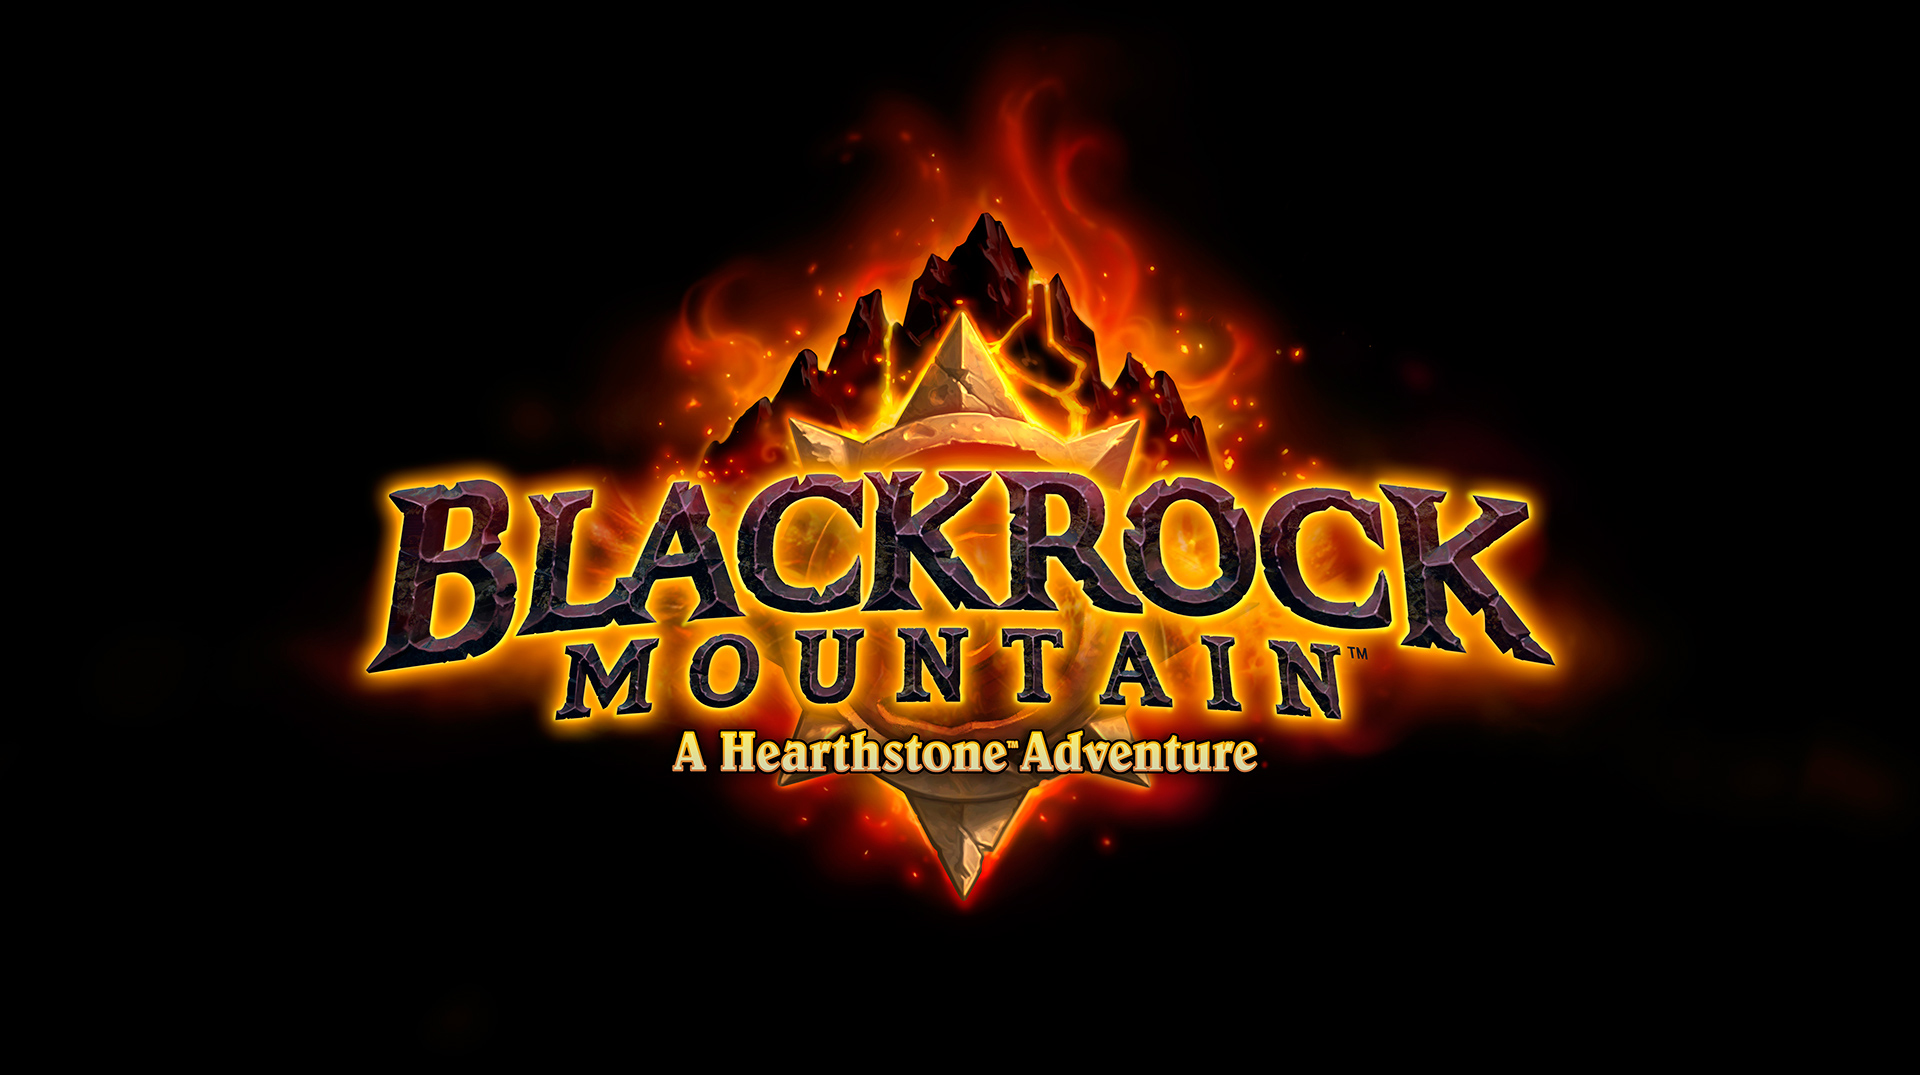 The Blackrock Mountain expansion for Hearthstone: Heroes of Warcraft arrives next week on April 2